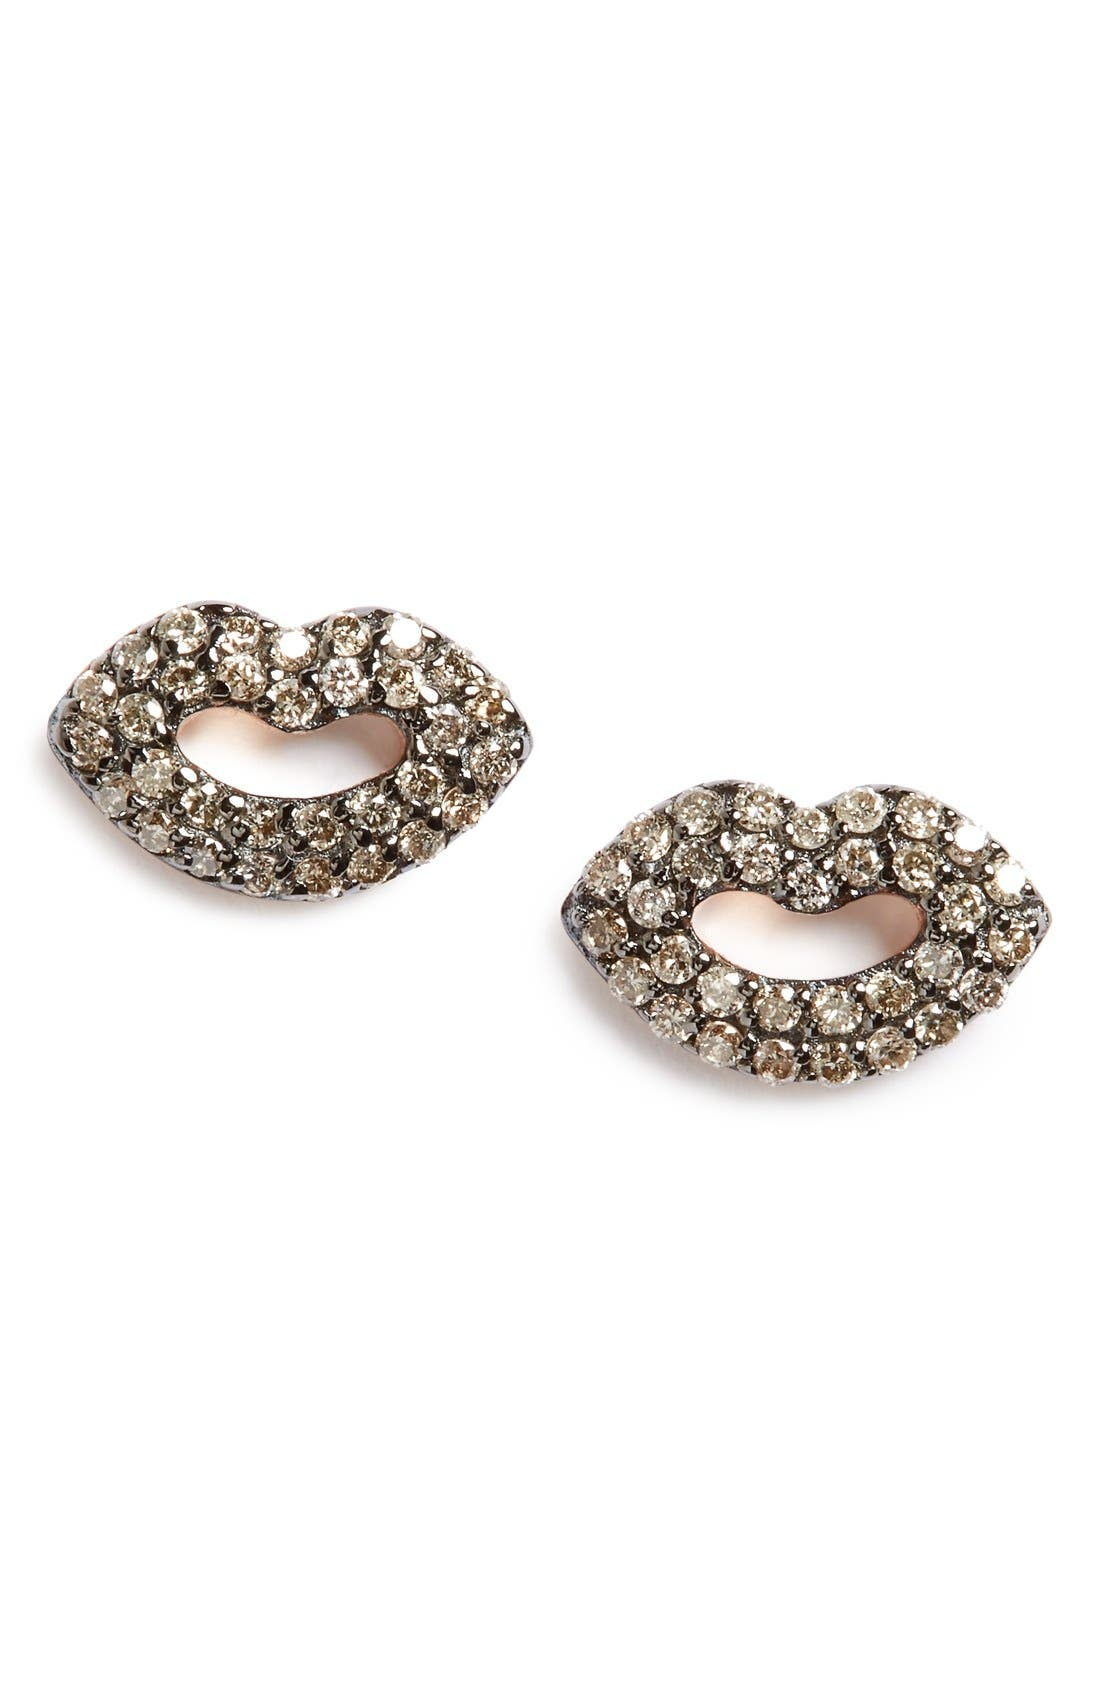 Kismet By Milka Mini Ruby Encrusted Lips Stud Earrings Nordstrom